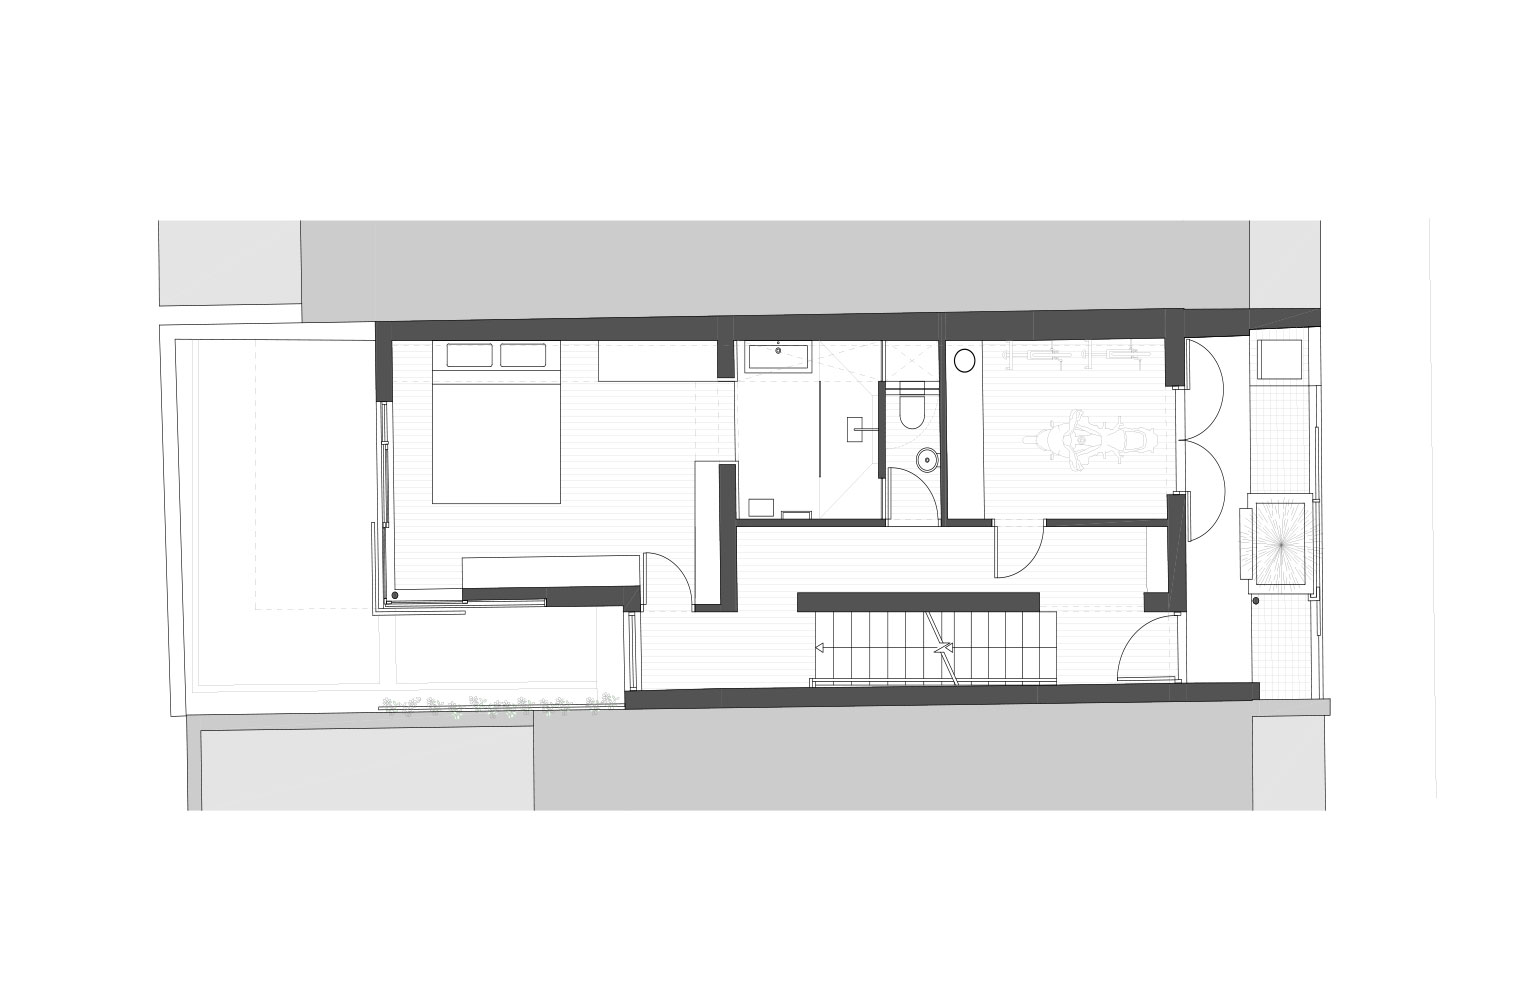 43 Lion Street - Ground Floor Plan